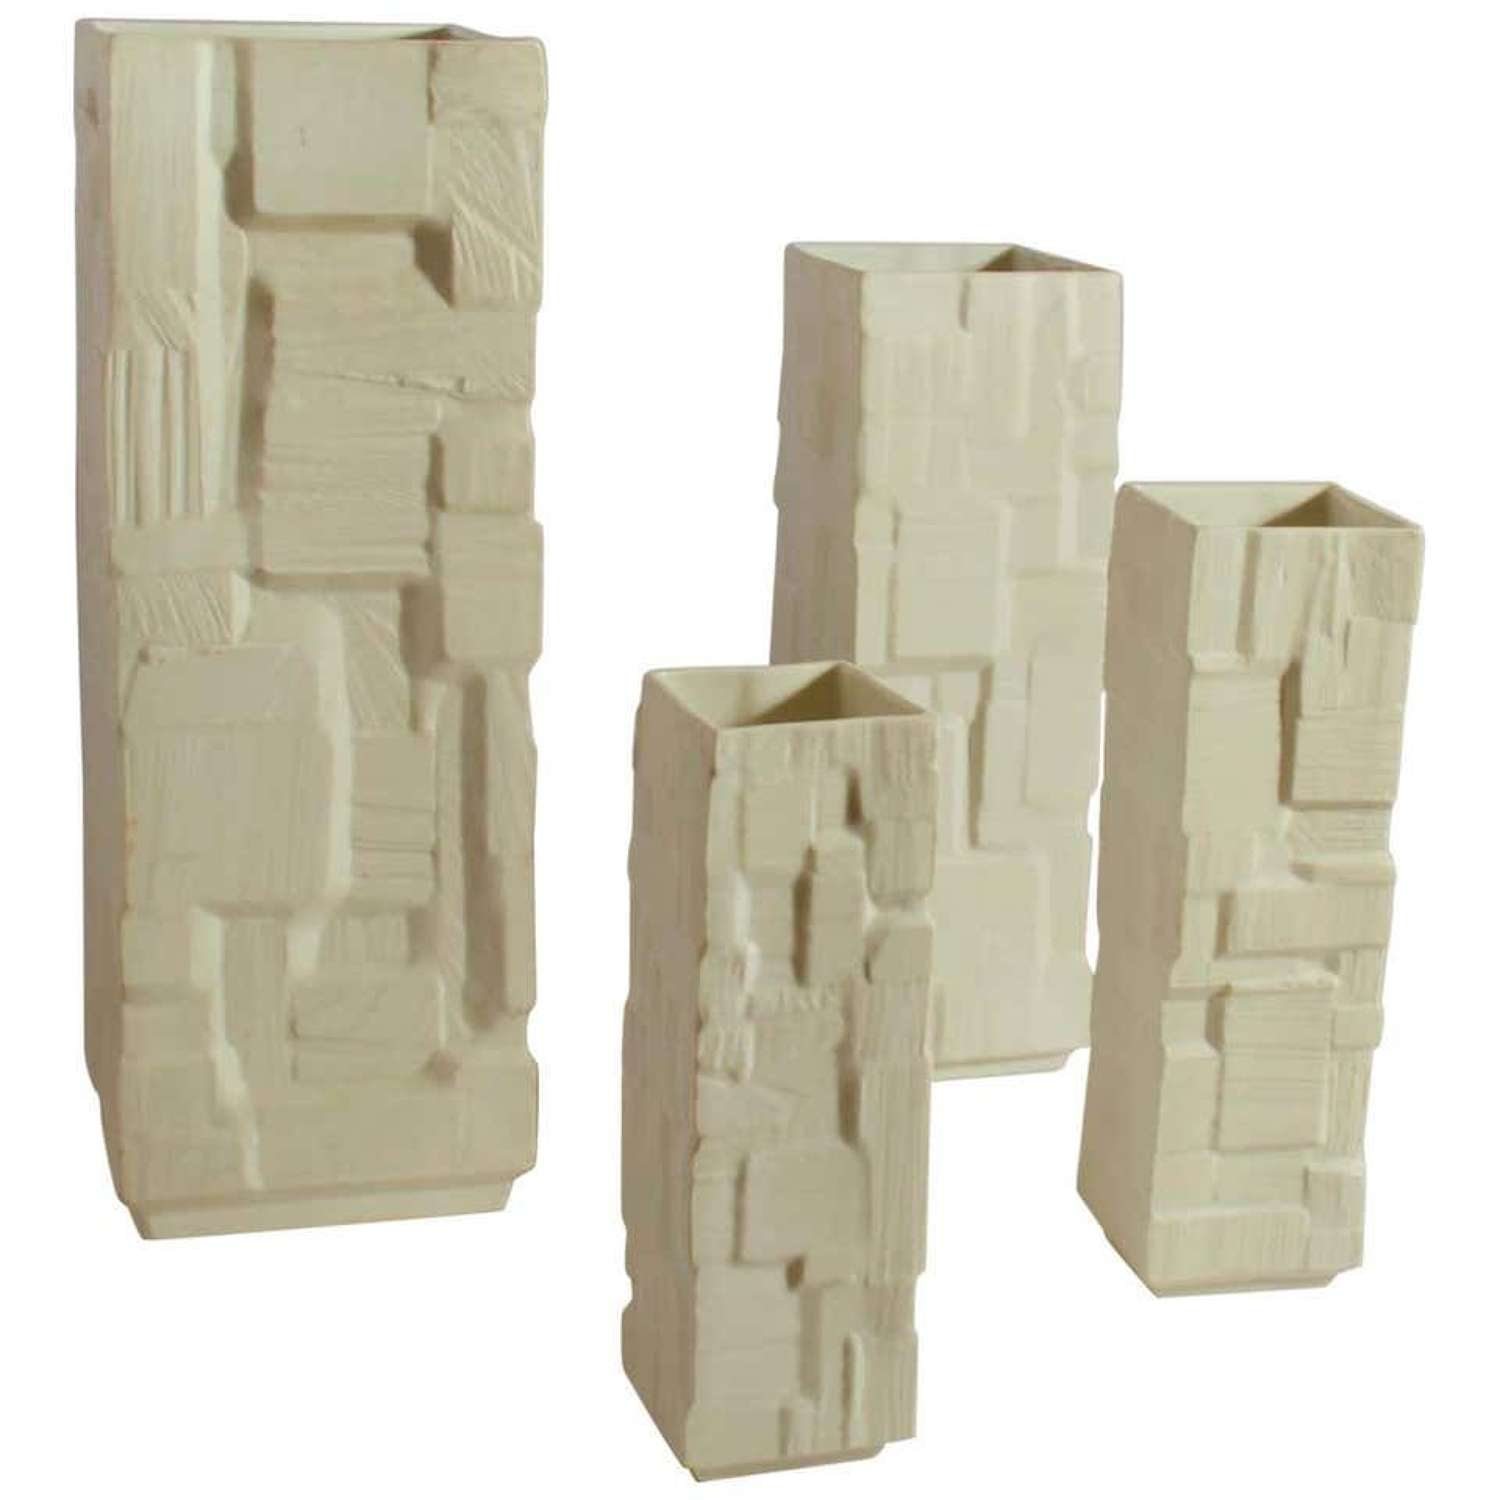 Set of Four White Square architectural Relief Vases